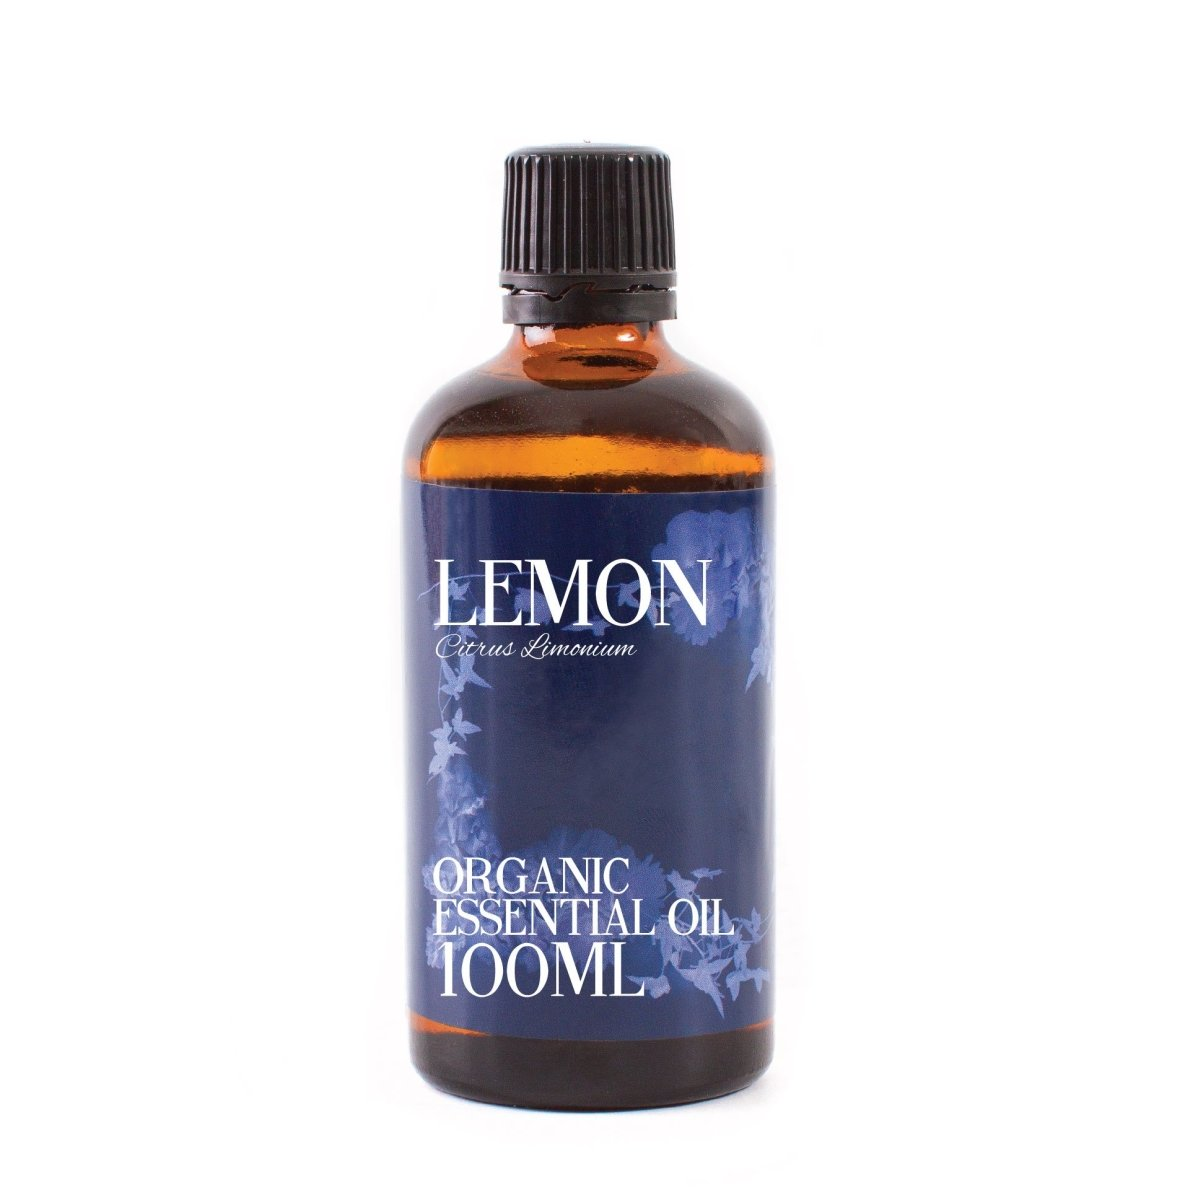 Lemon Organic Essential Oil - Mystic Moments UK